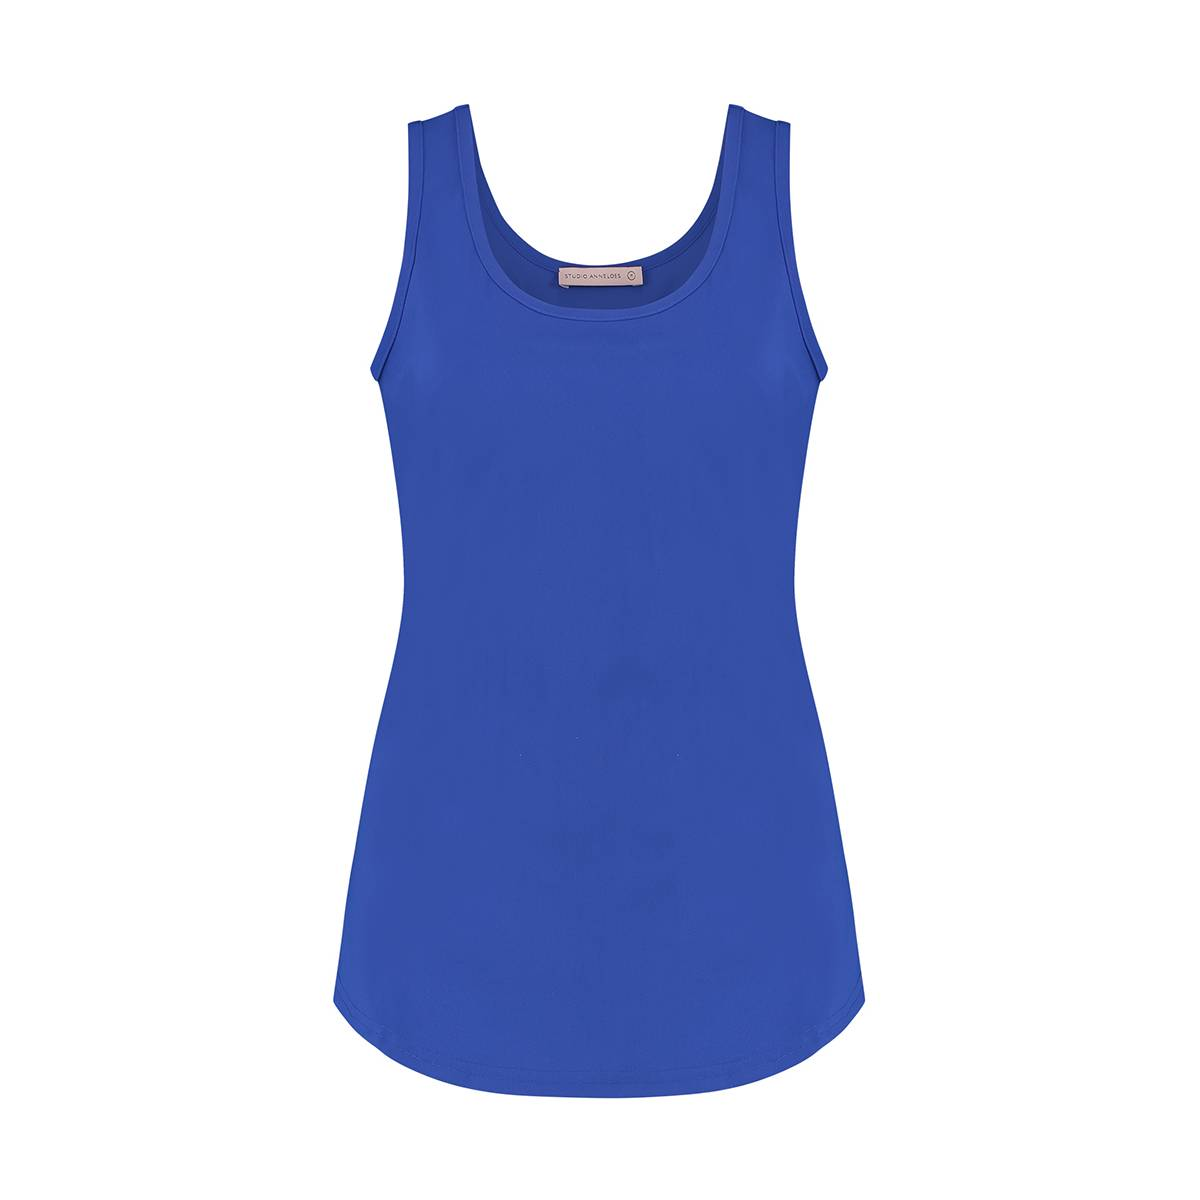 Studio Anneloes Race top 04662 Blauw